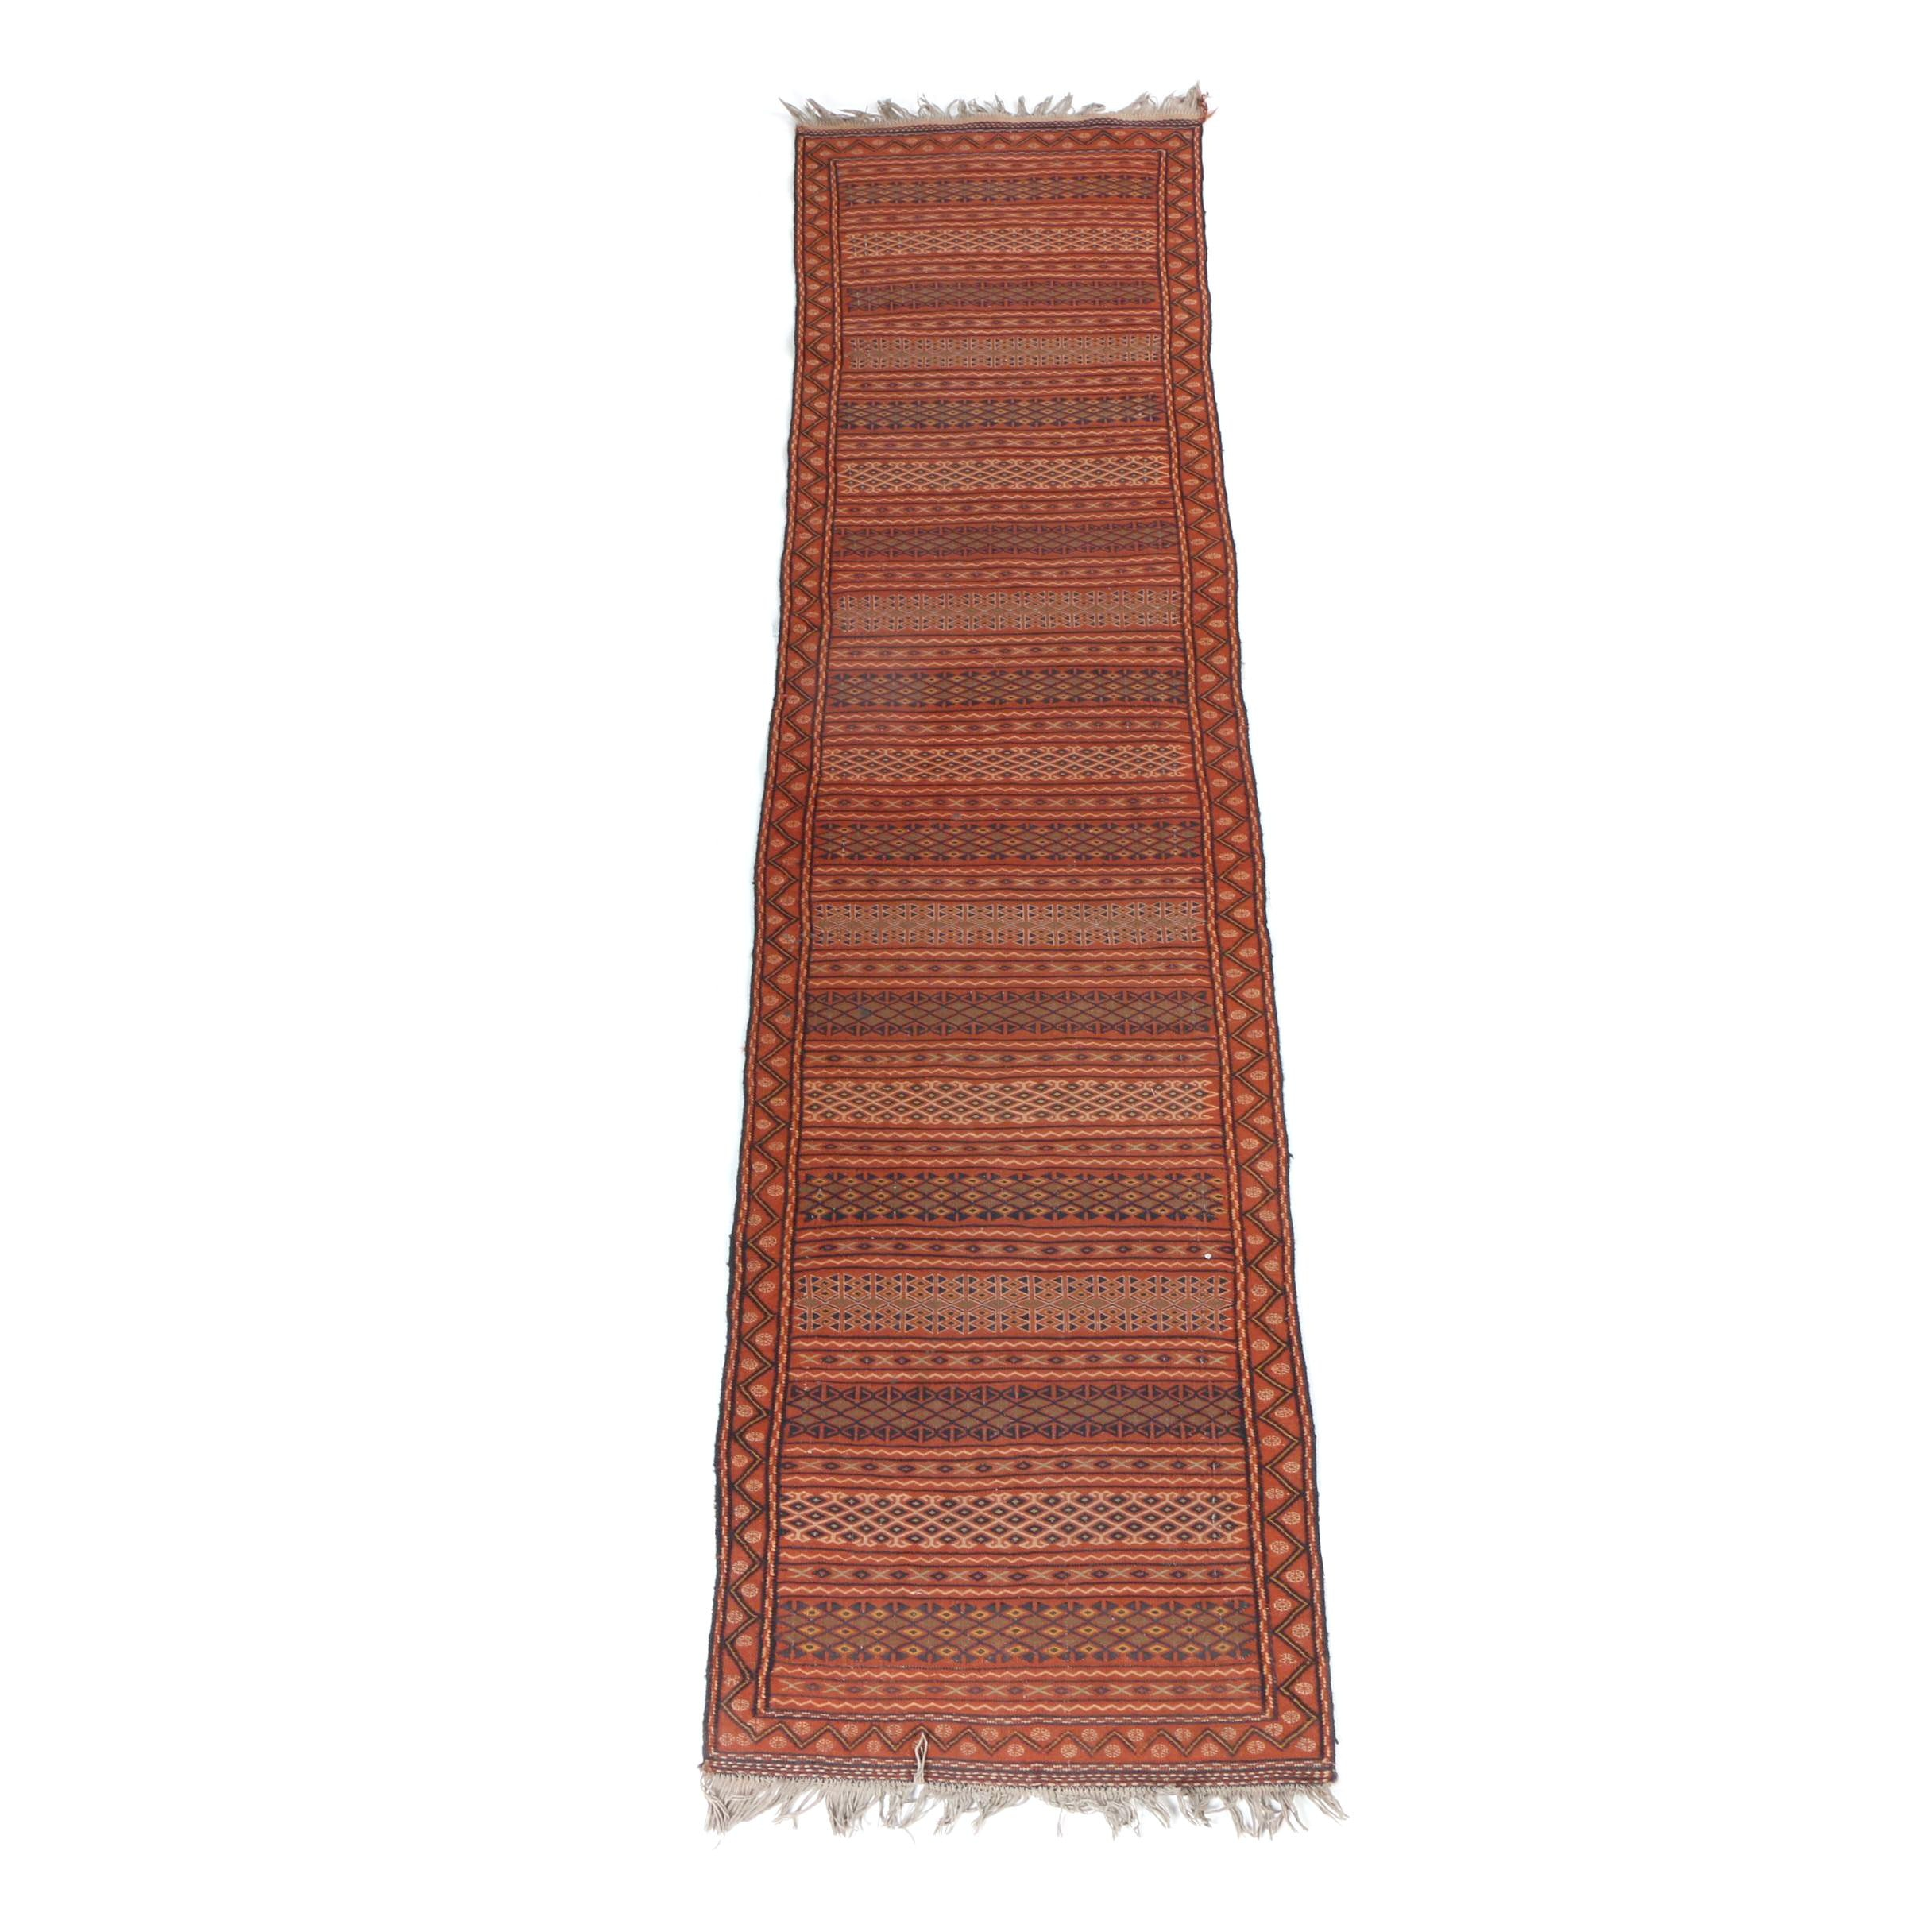 Handwoven and Embroidered North African Carpet Runner